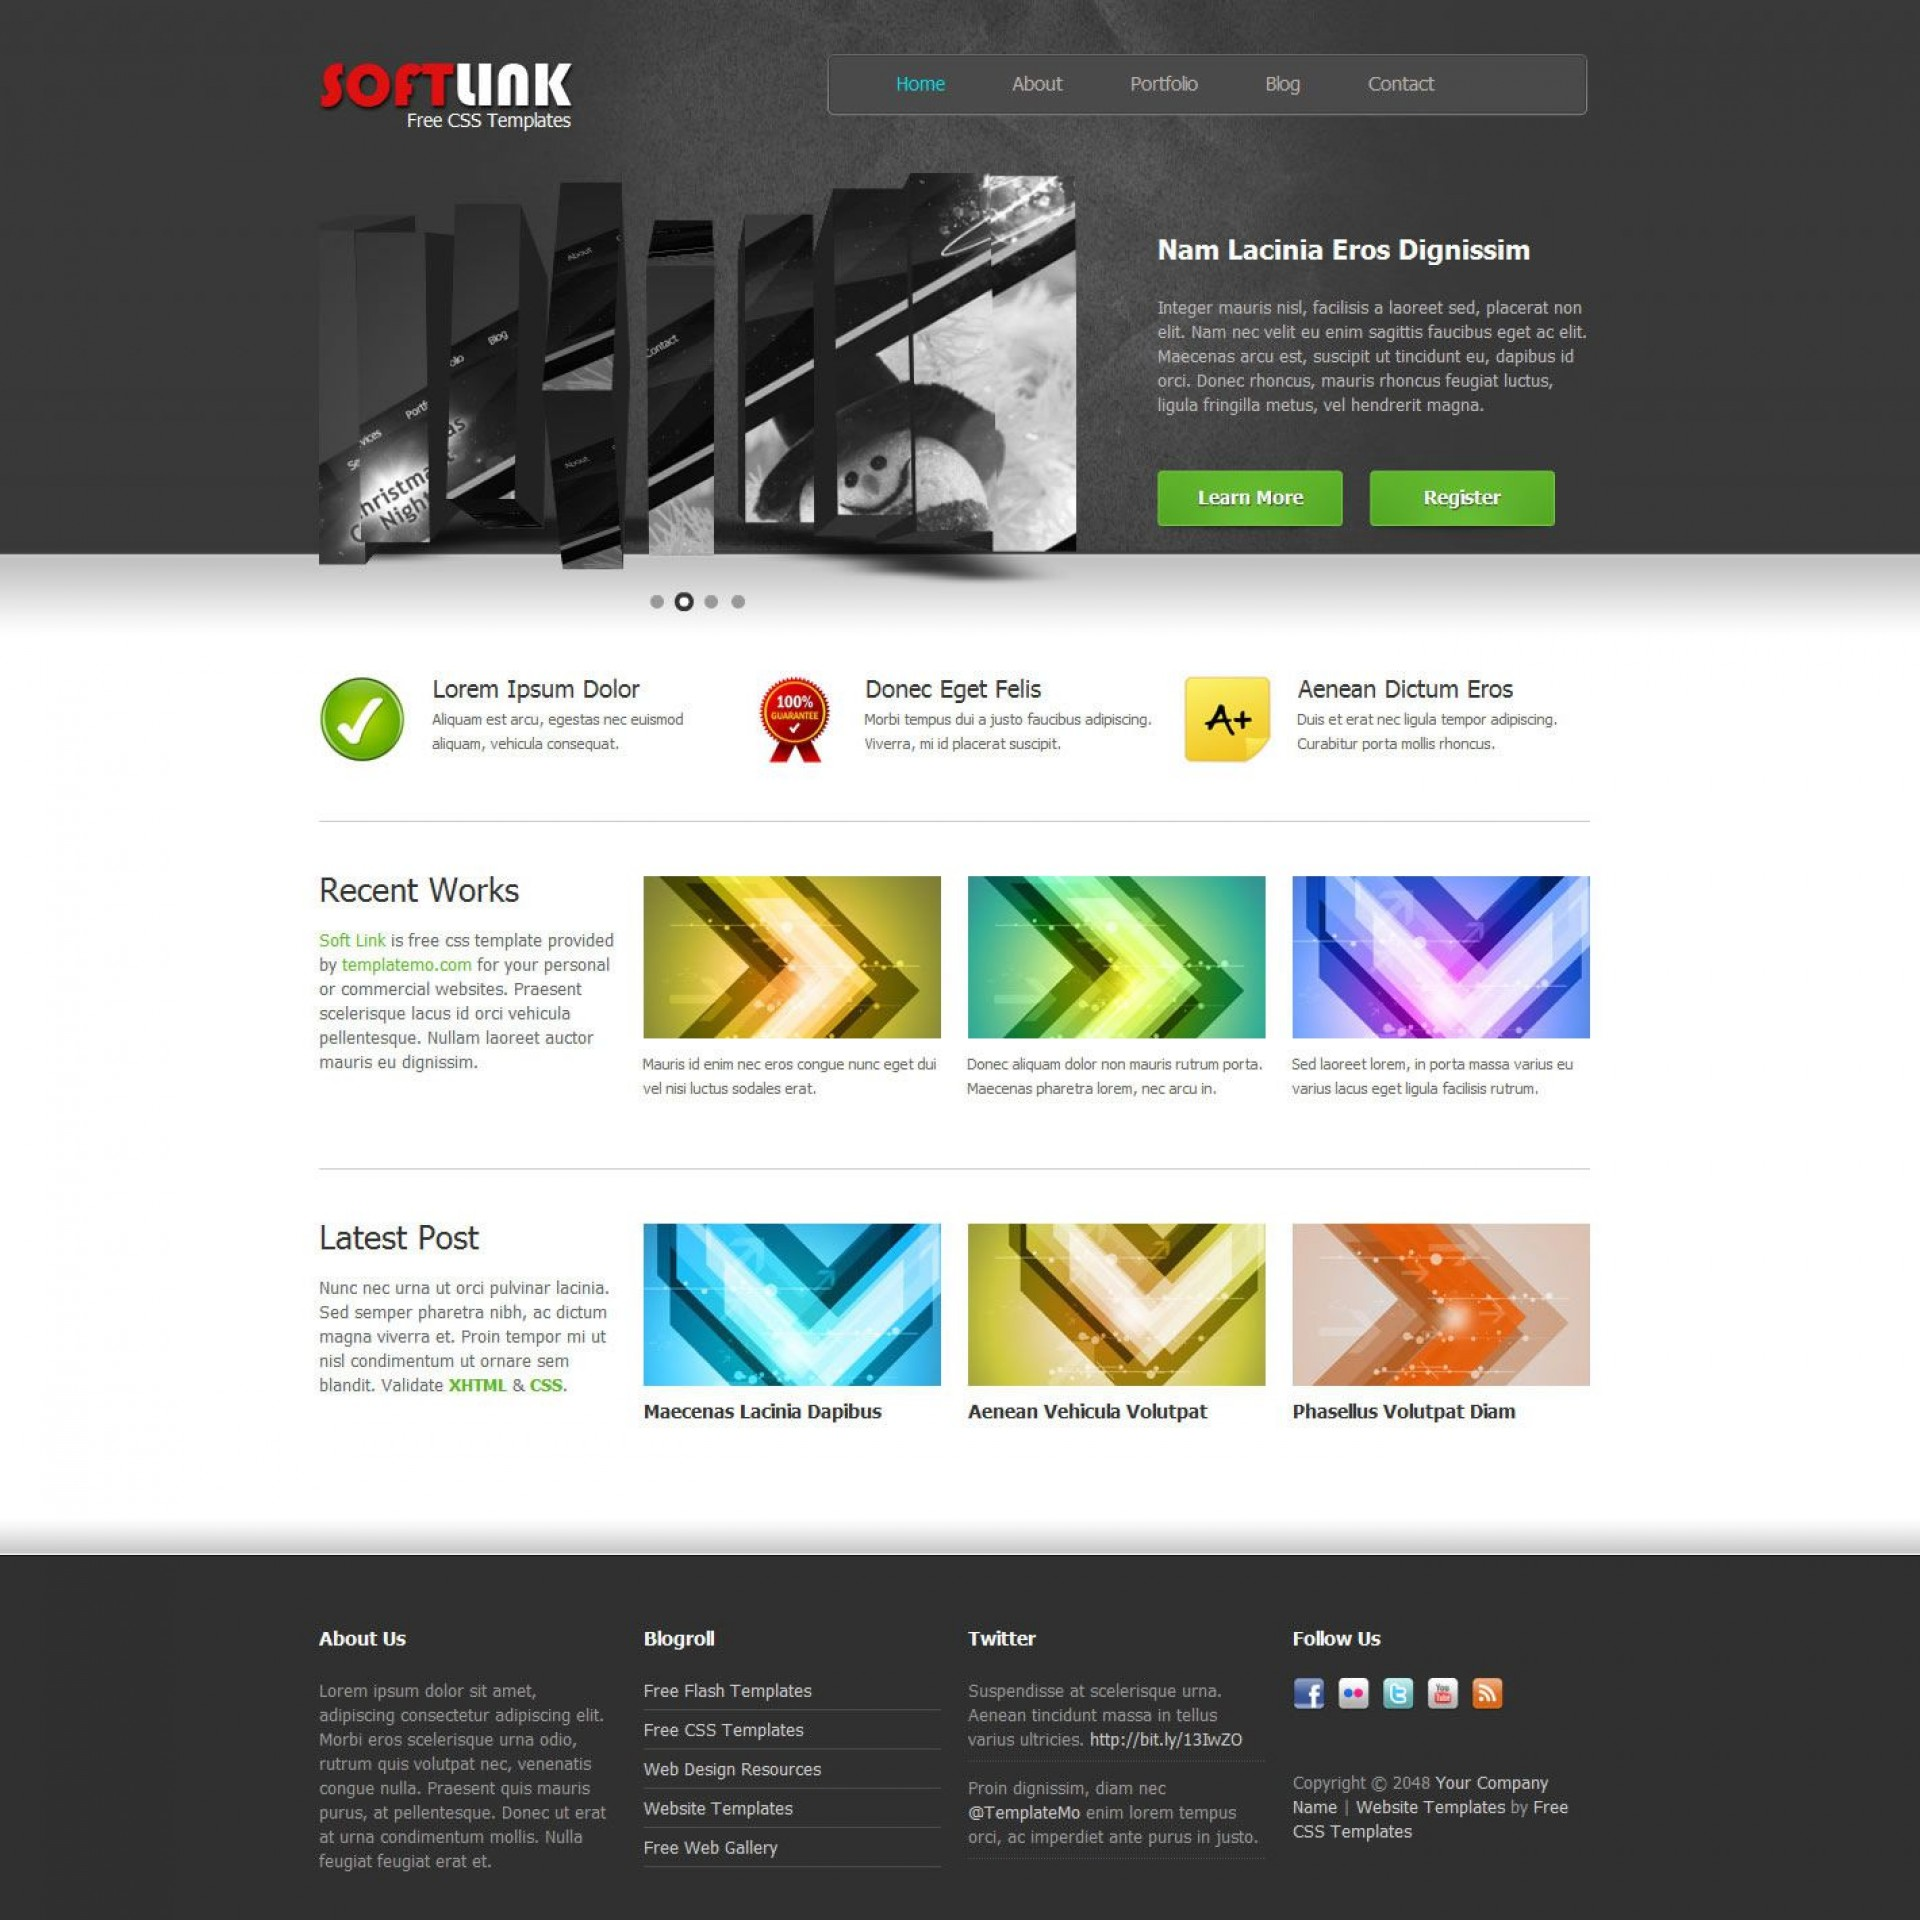 006 Awful Free Website Template Dreamweaver Photo  Ecommerce Download Construction Html1920